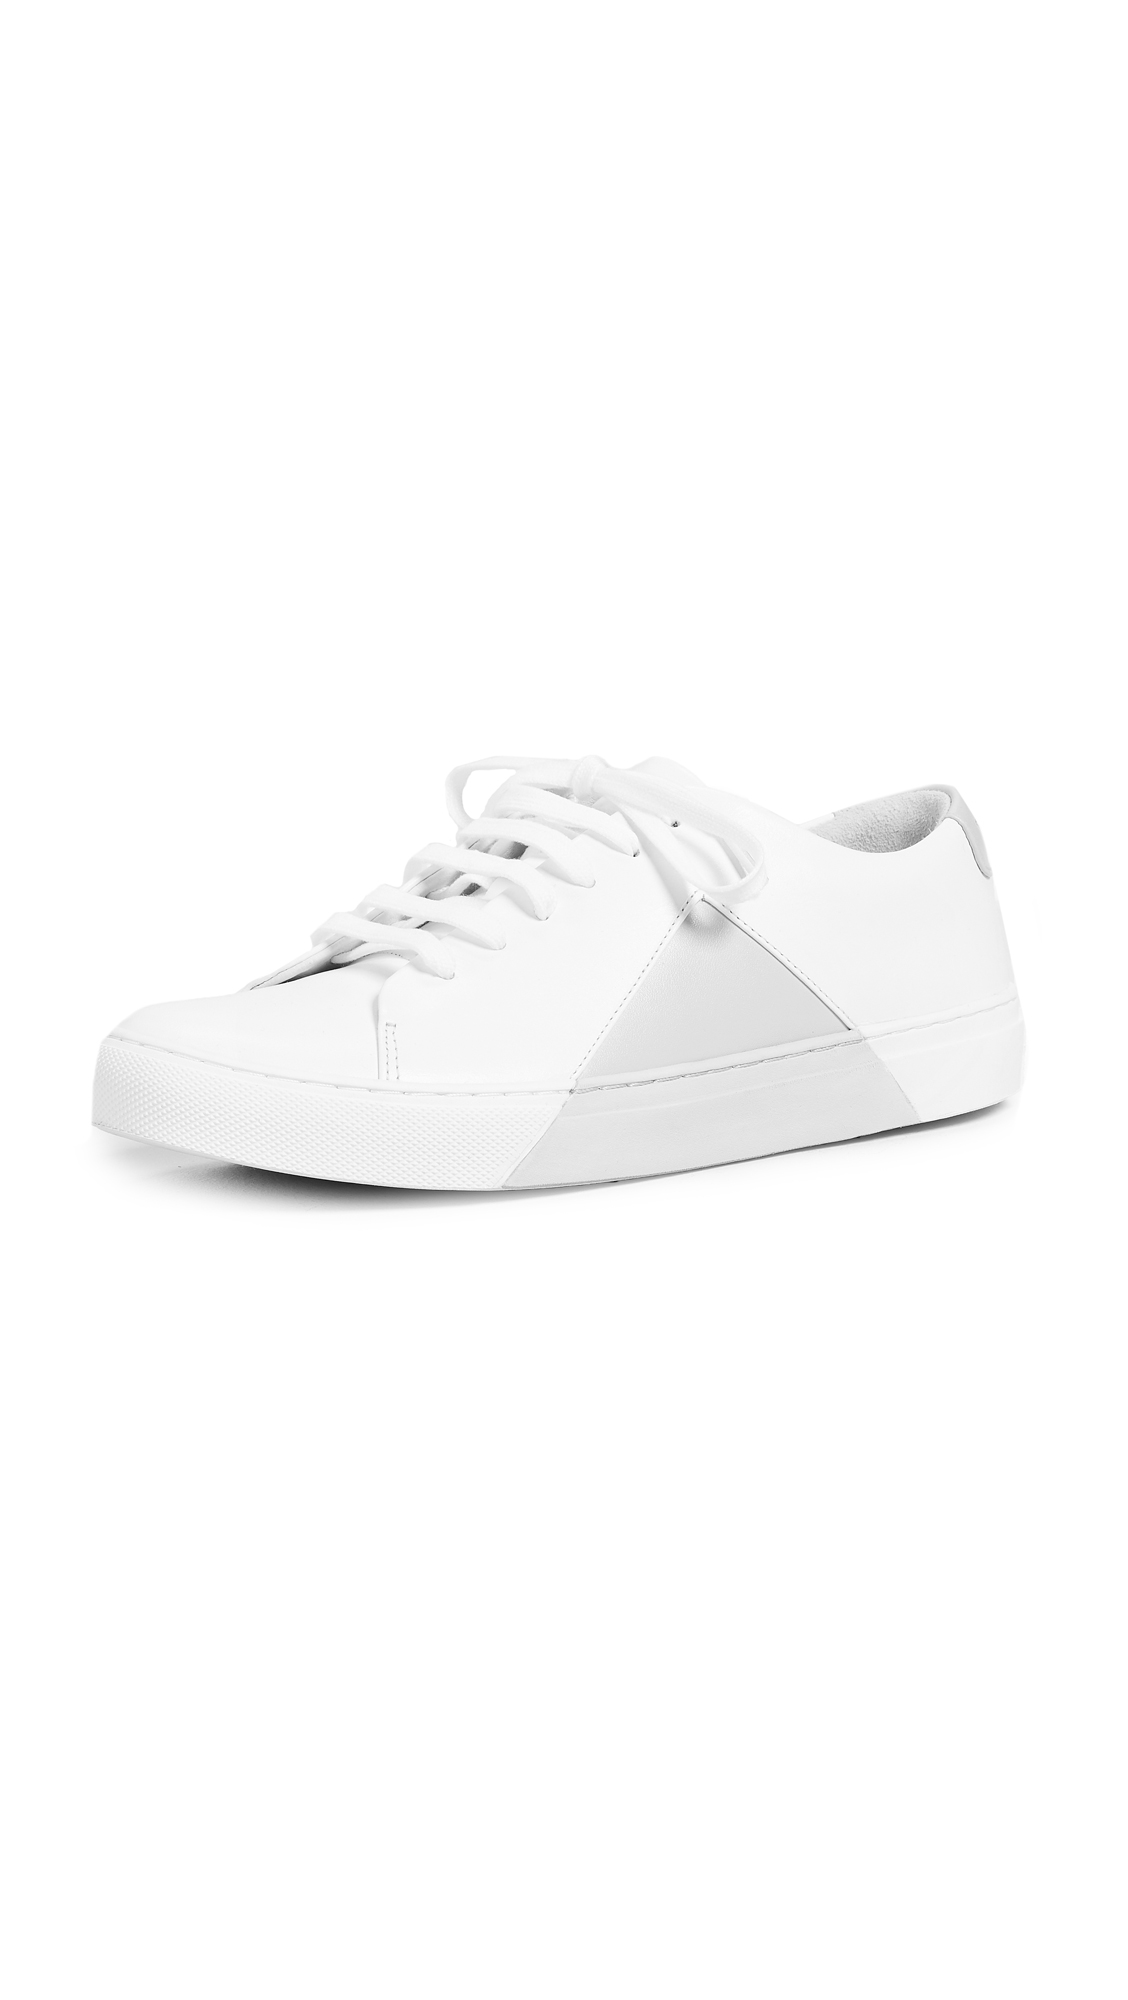 THEY NEW YORK Triangle Low Sneakers - White/Grey